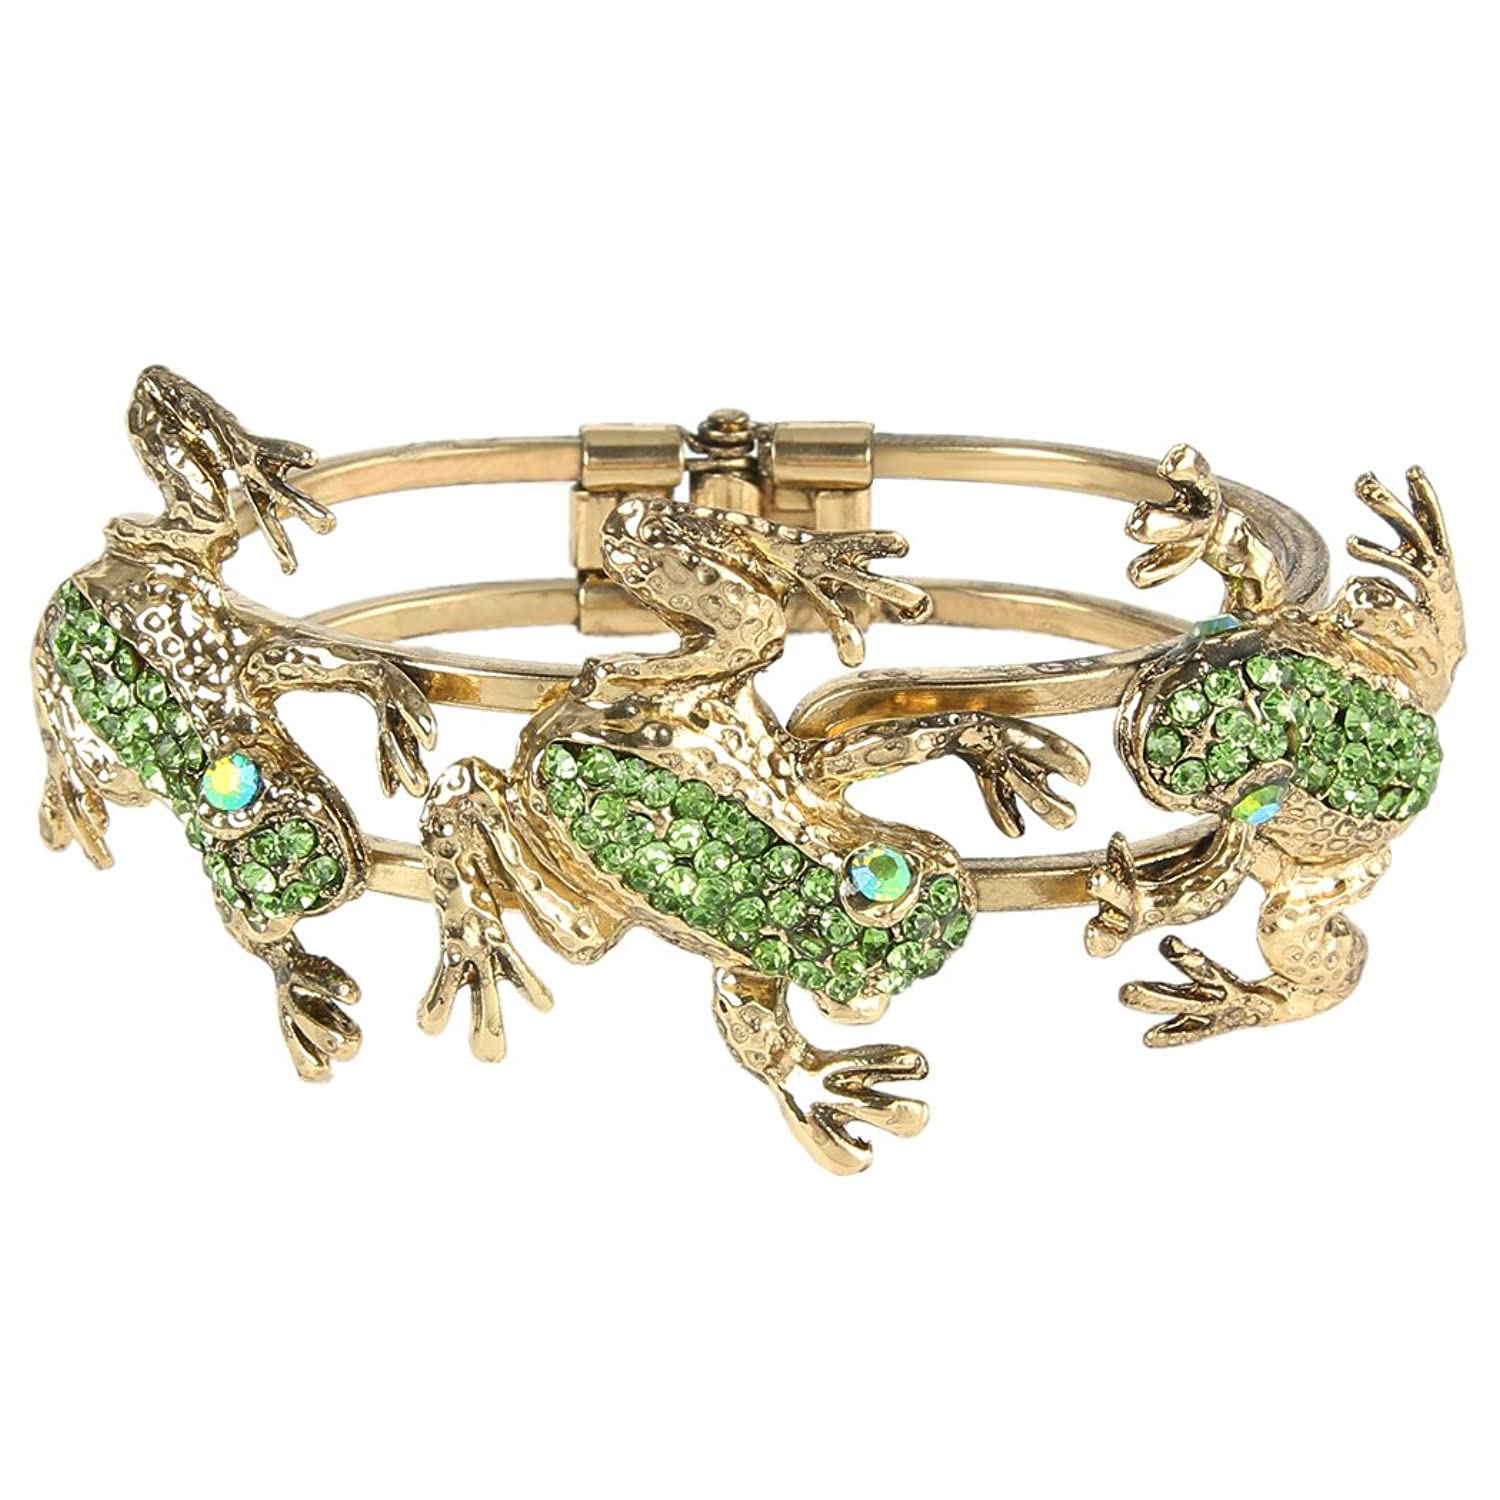 50s Jewelry: Earrings, Necklace, Brooch, Bracelet EVER FAITH Womens Austrian Crystal Vintage Inspired 3 Frogs Bangle Bracelet $16.99 AT vintagedancer.com